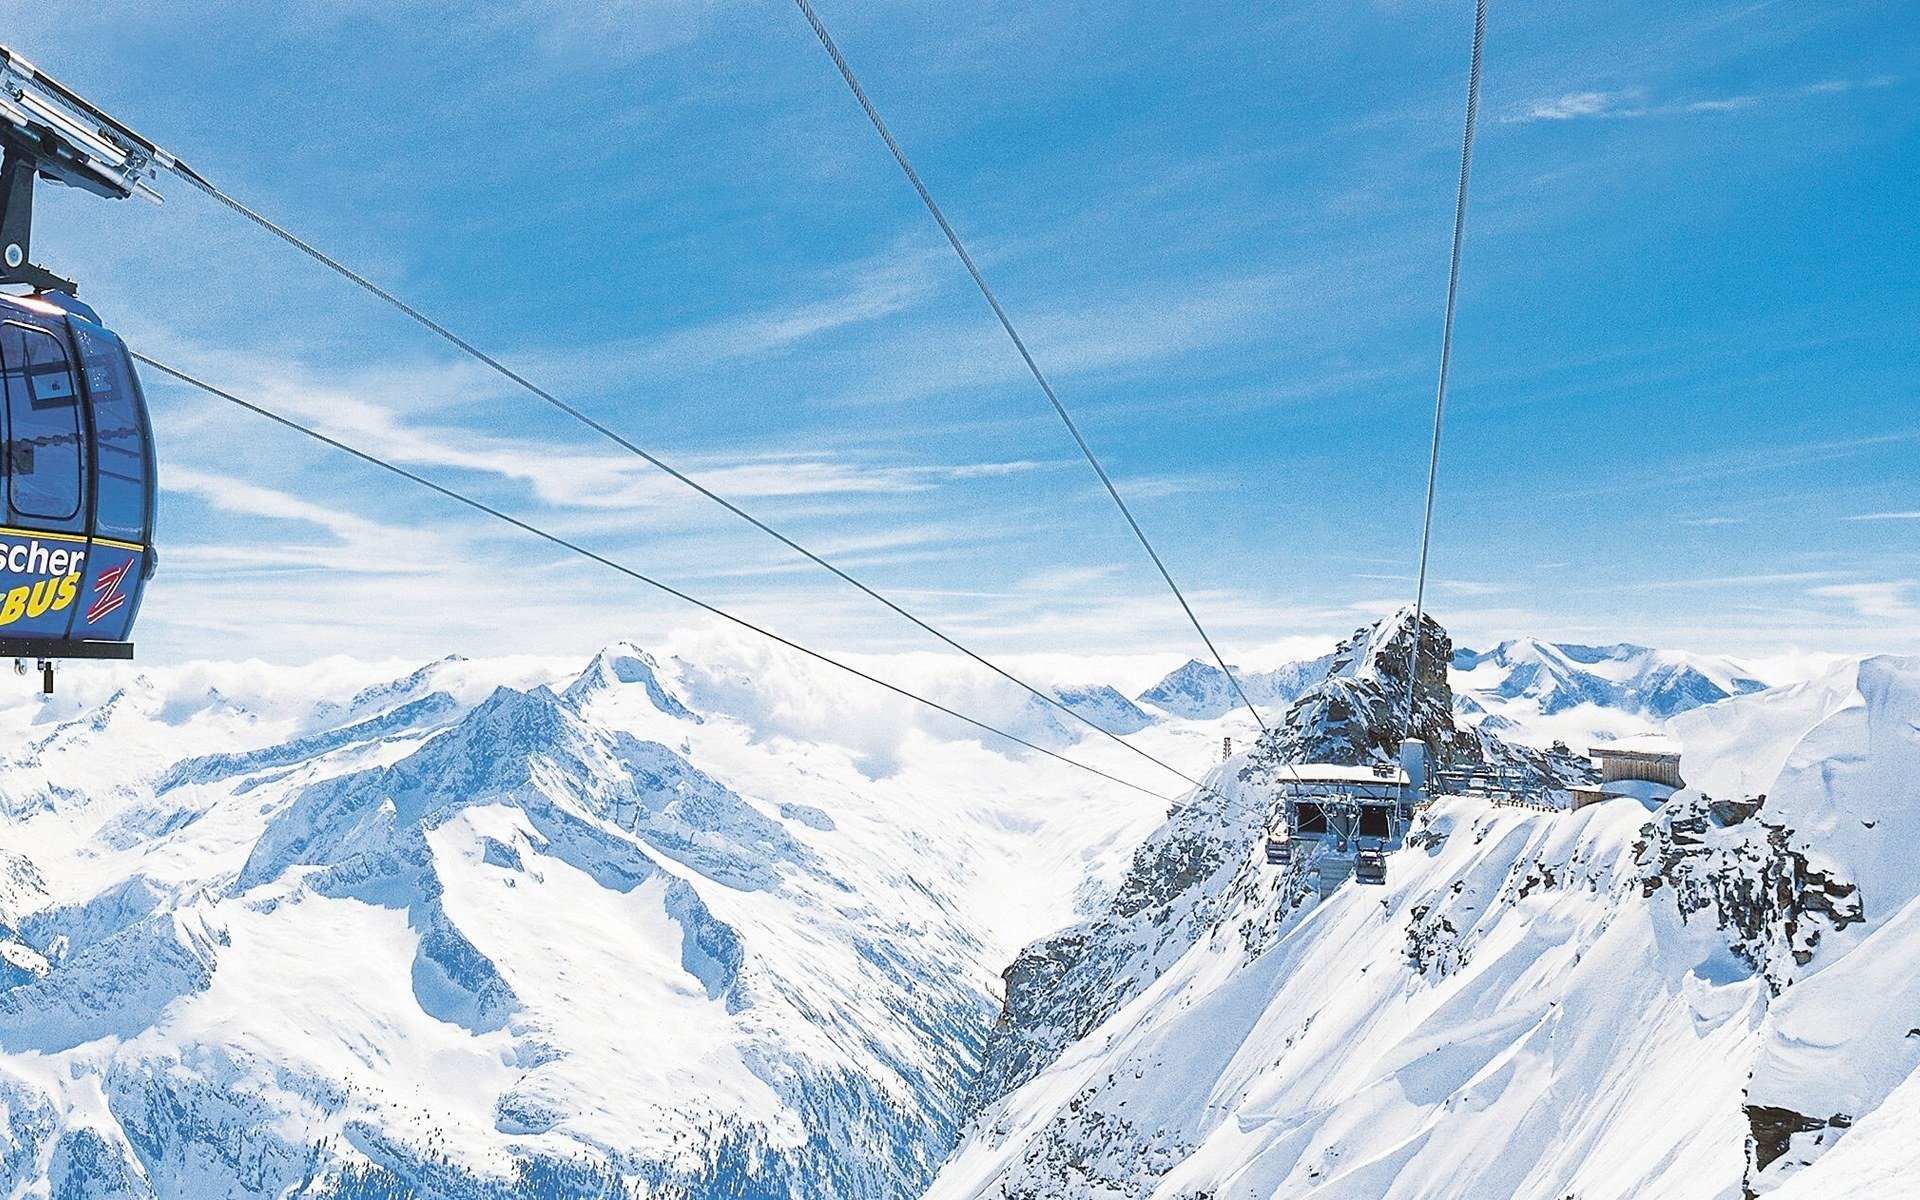 SKI LIFT skiing snowboarding winter snow mountains wallpaper 1920x1200